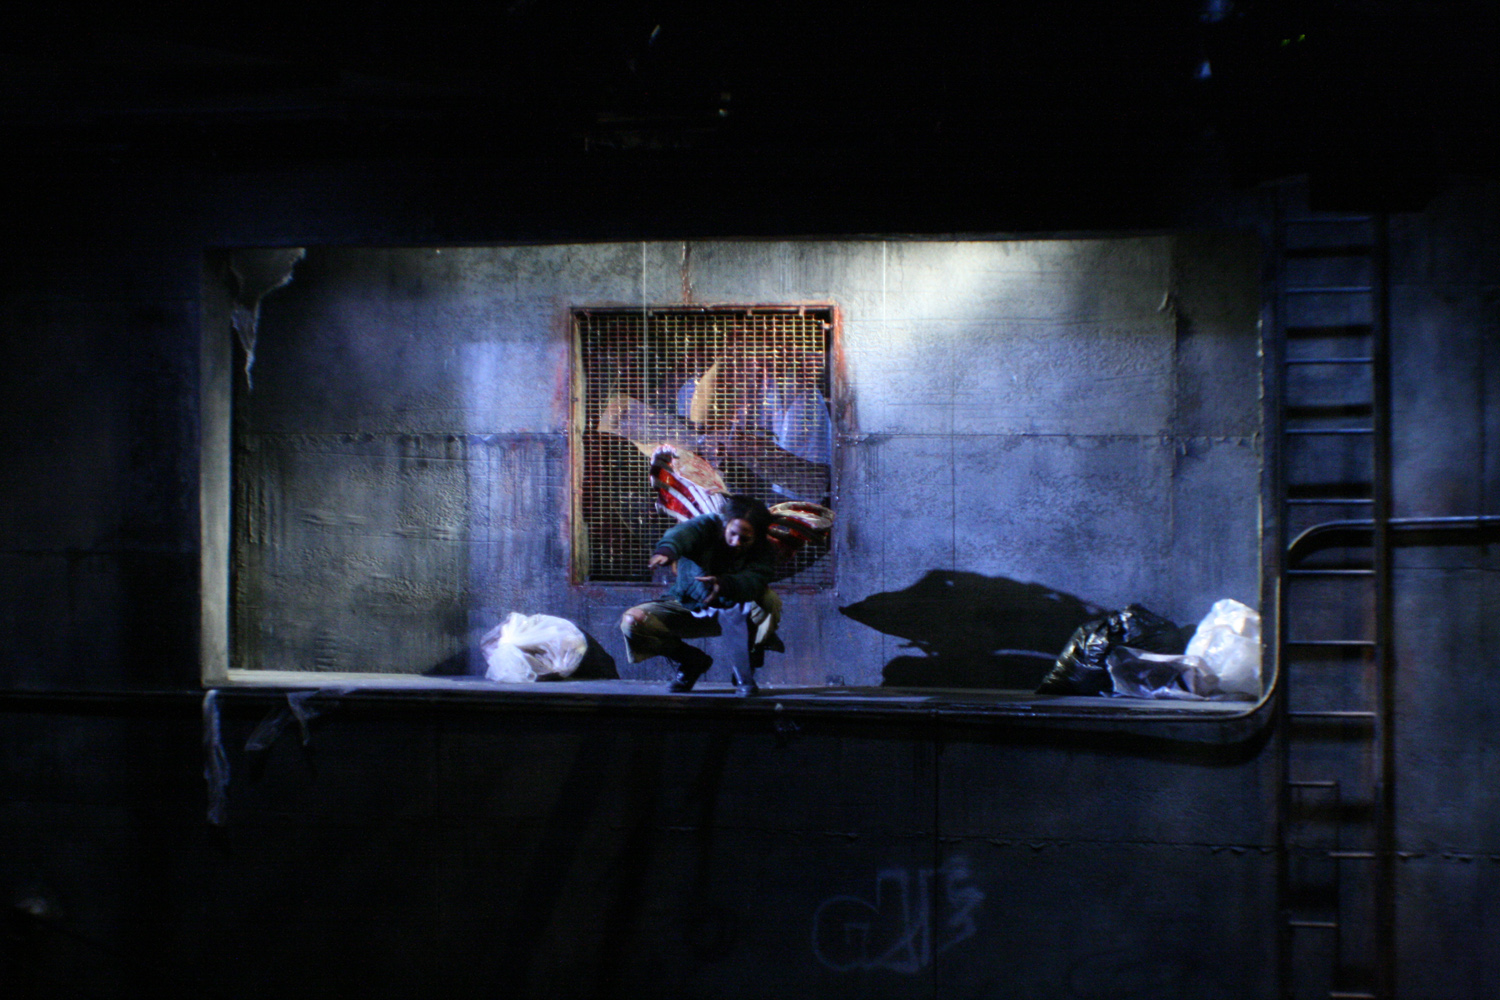 a review of the production of jose riveras play marisol New paltz — under the direction of theatre arts professor beverly brumm, the summer's production of josé rivera's obie award-winning play marisol: an apocalyptic fantasy returns to suny new paltz for a one-week run.